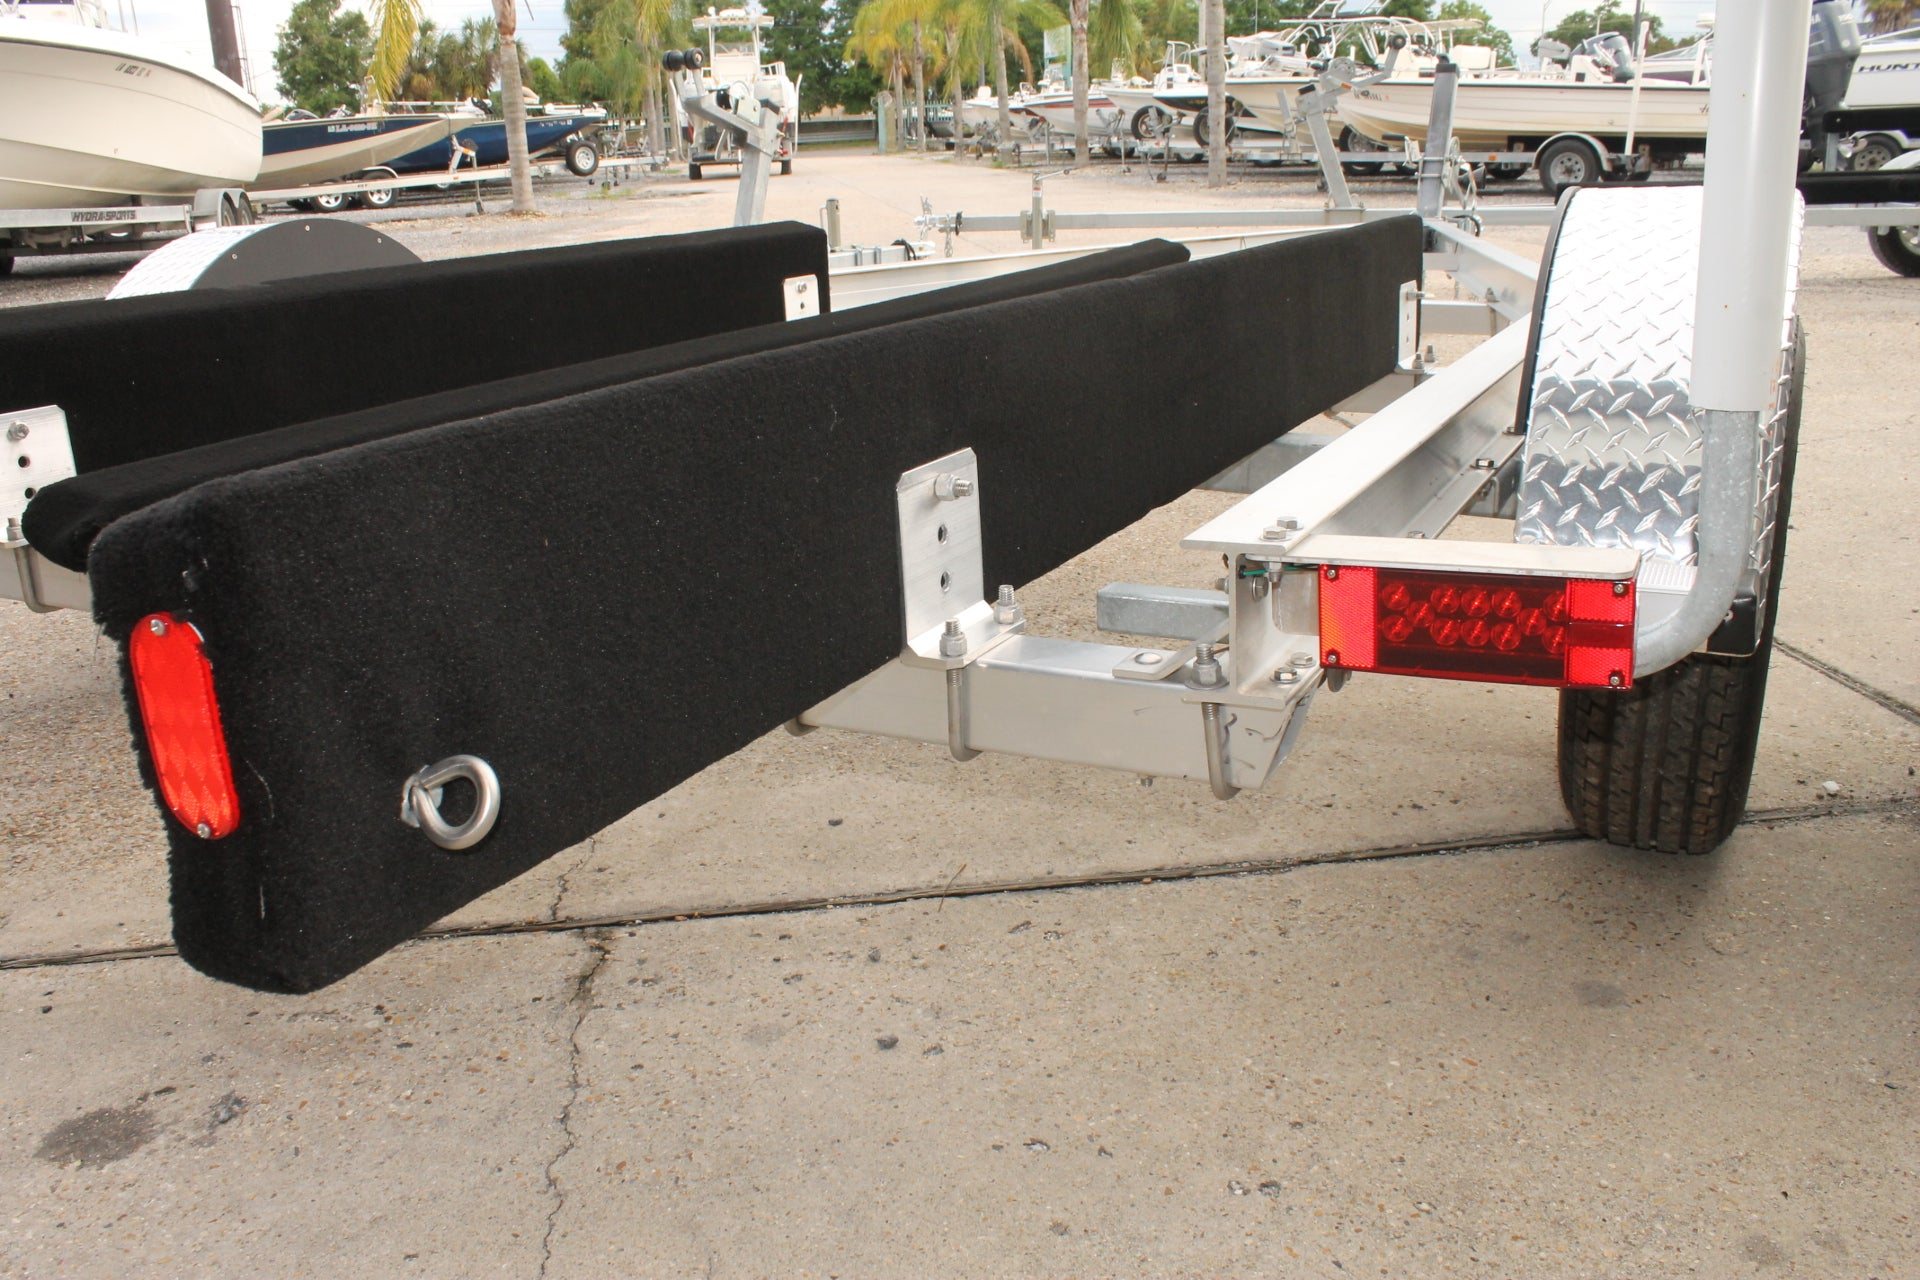 ... 2018 McClain Trailers AT-1930 Aluminum Boat trailer for 18 to 19 ft  modified V ...